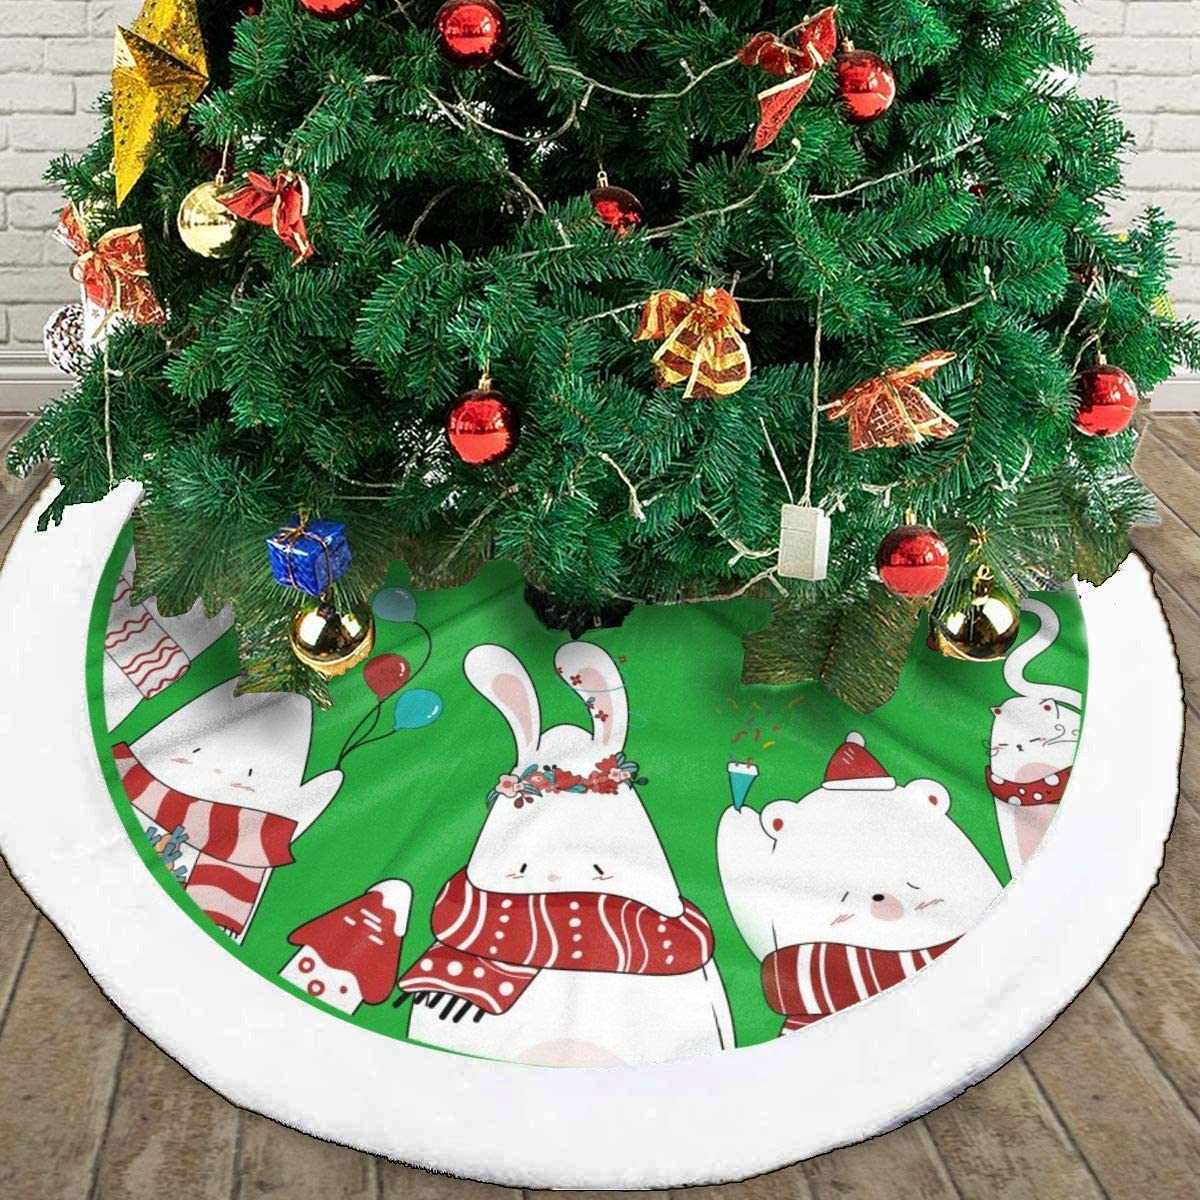 GOWINEU 30 Inch Christmas Tree Skirt with Blue Water Design Indoor Outdoor Gift for Children Family